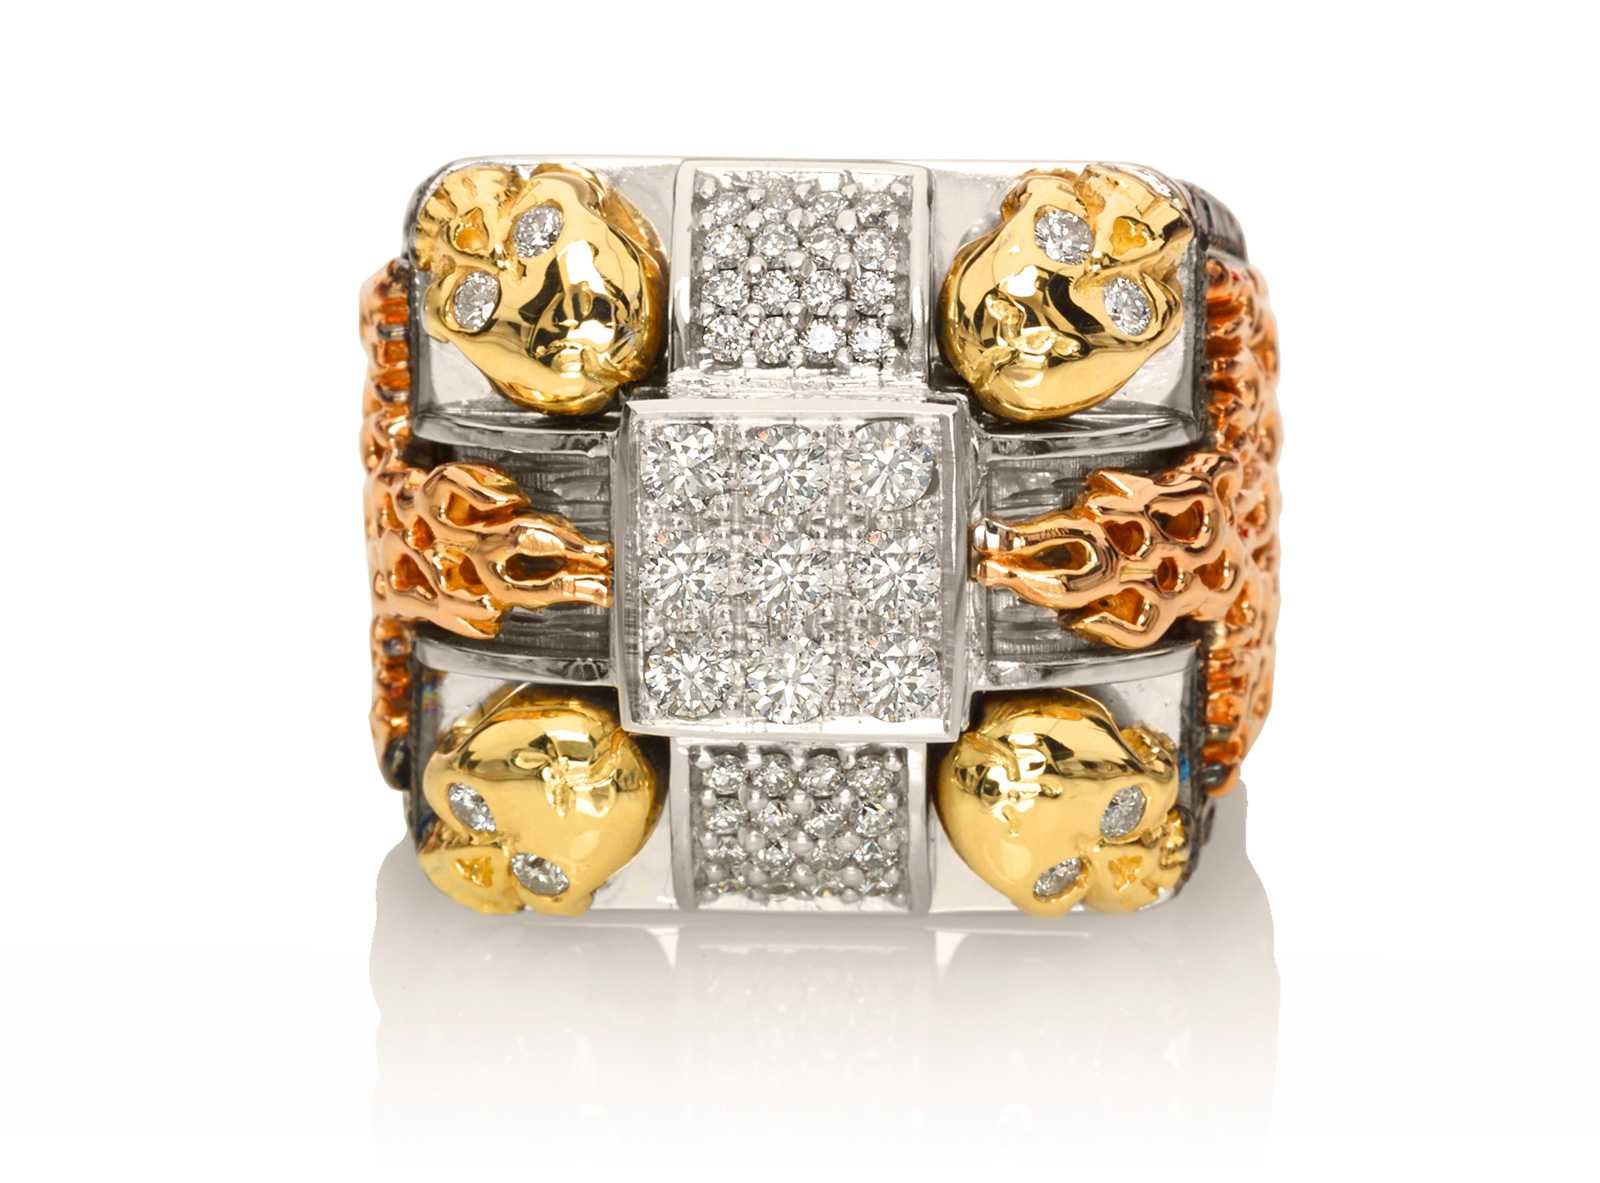 RG1014WG-A Gatekeepers Ring in White, Yellow and Rose Gold with White & Black Diamonds